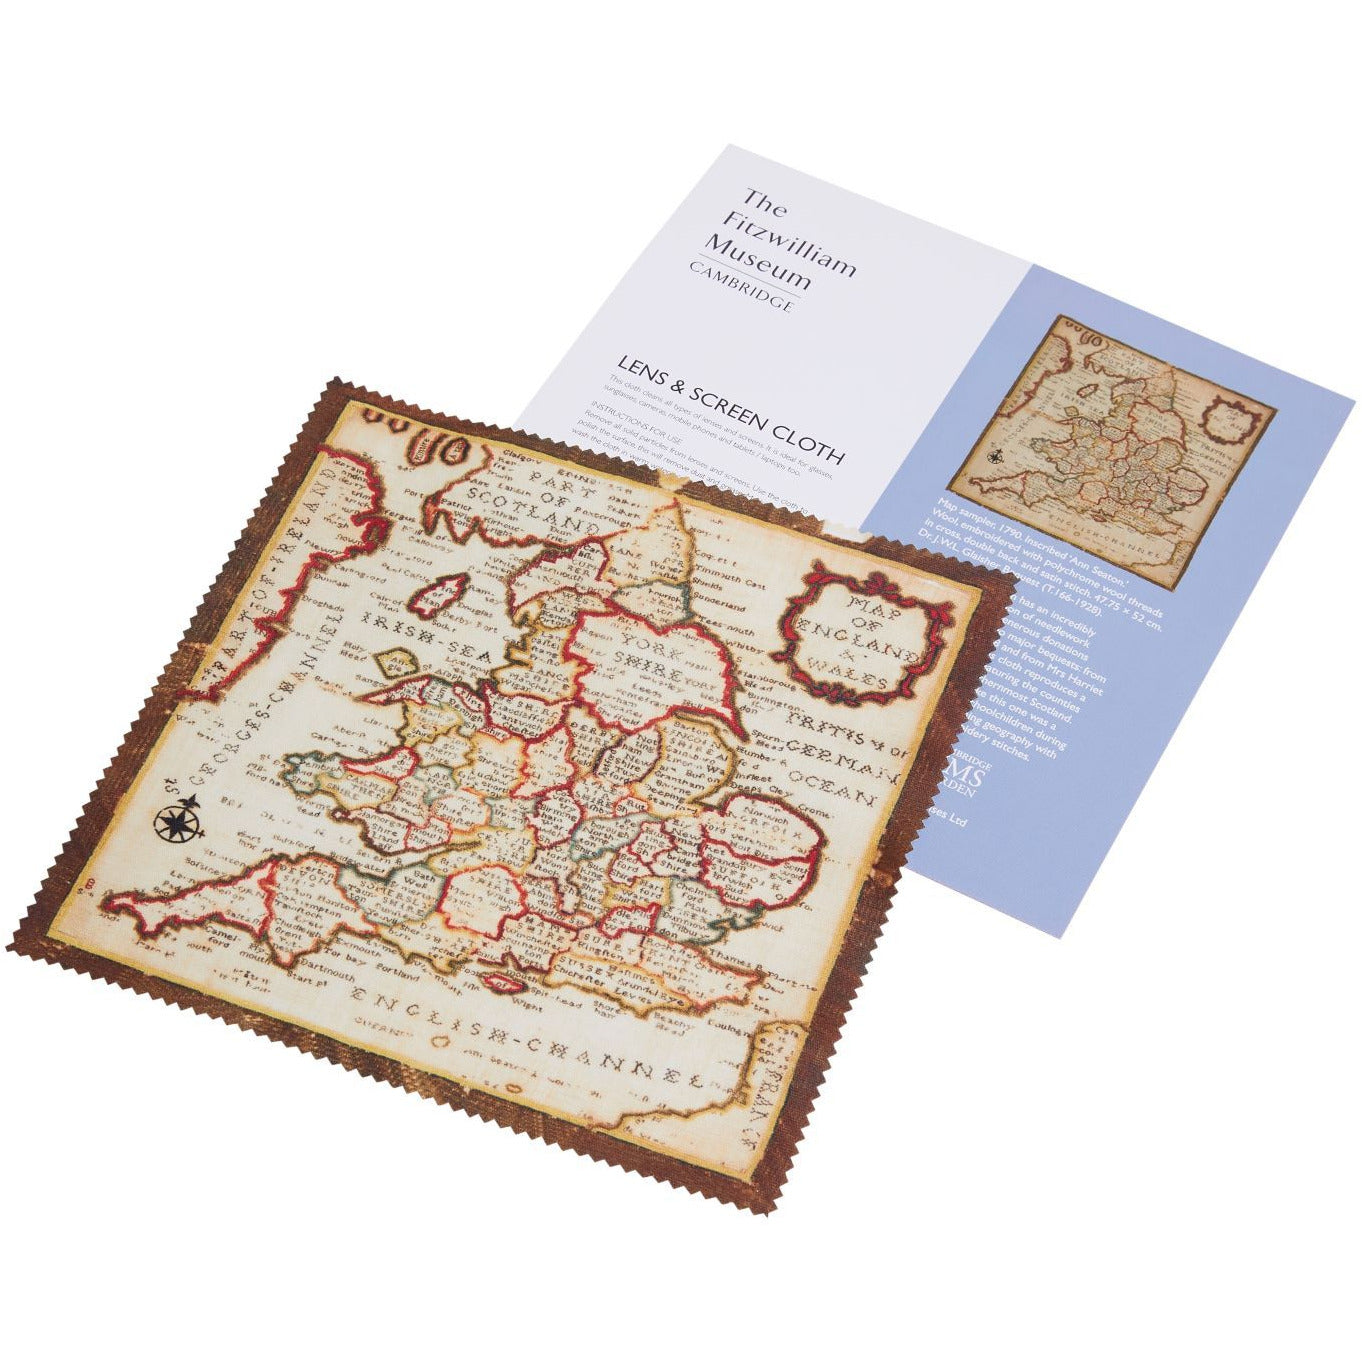 Featured image for the project: Map Sampler - Lens and screen cloth